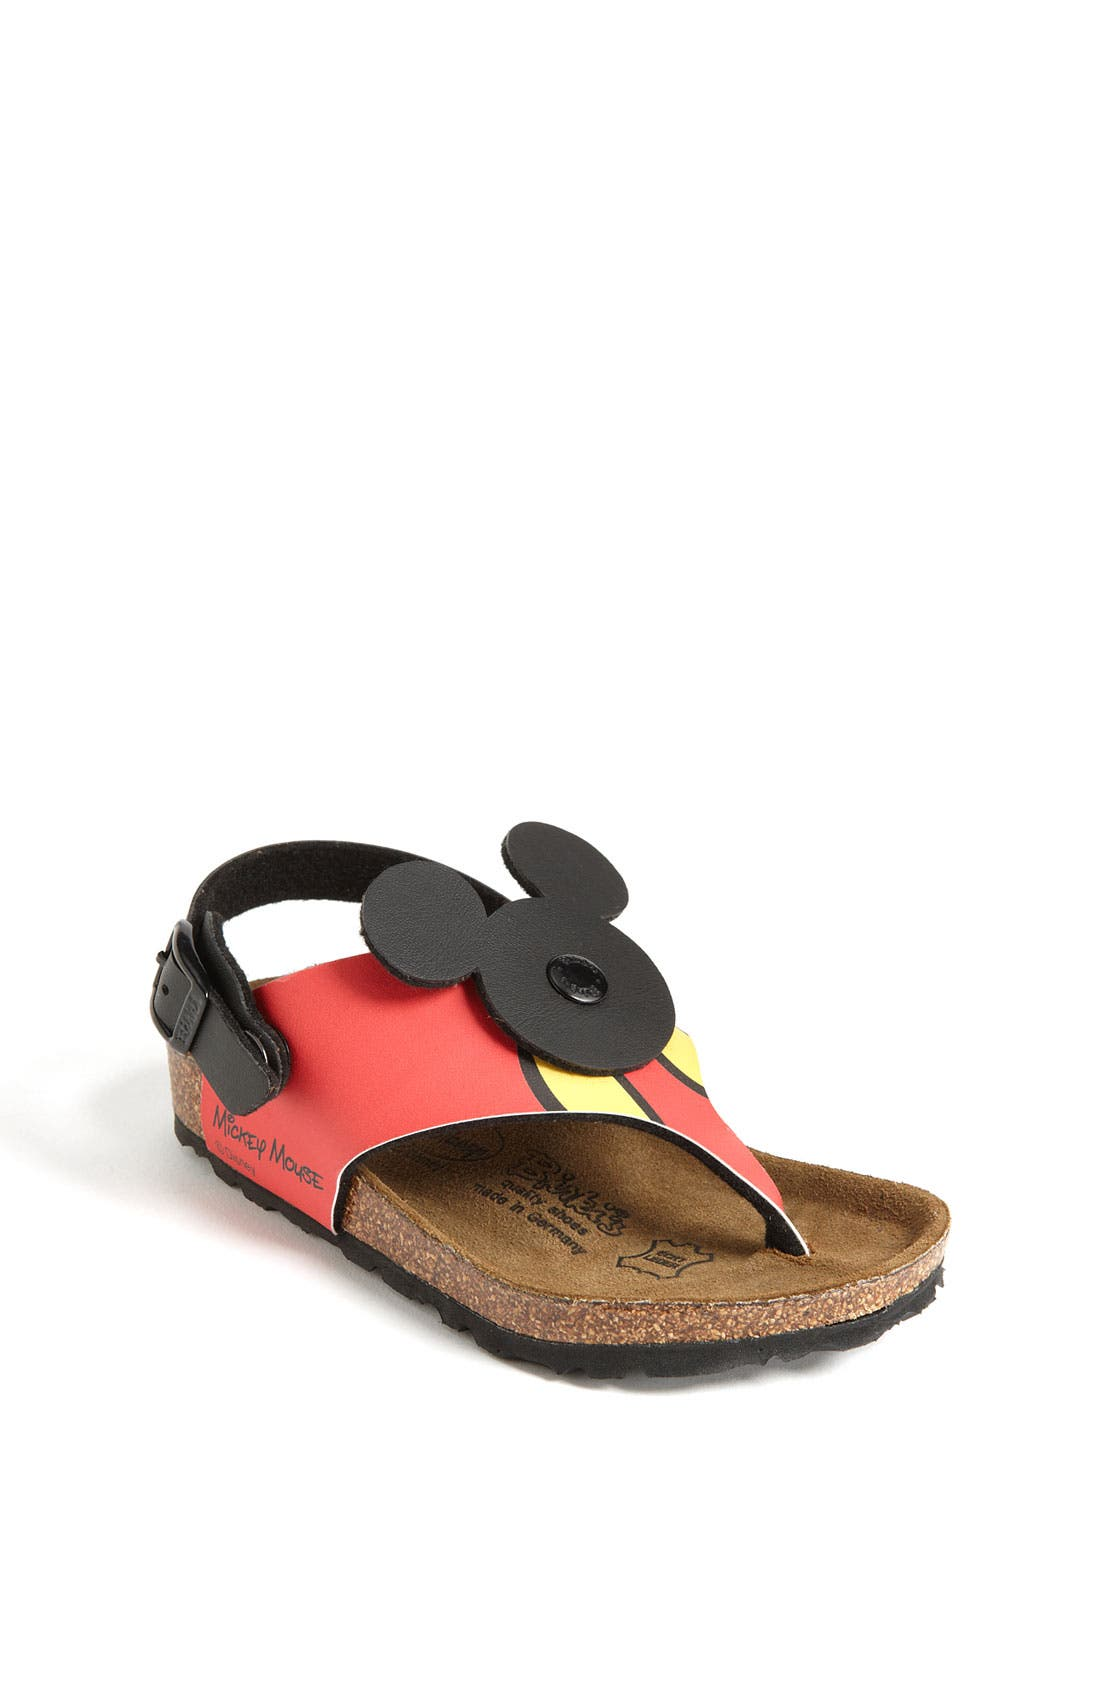 Alternate Image 1 Selected - Birki's® Kids 'Sumatra Mickey' Thong Sandal (Toddler & Little Kid)